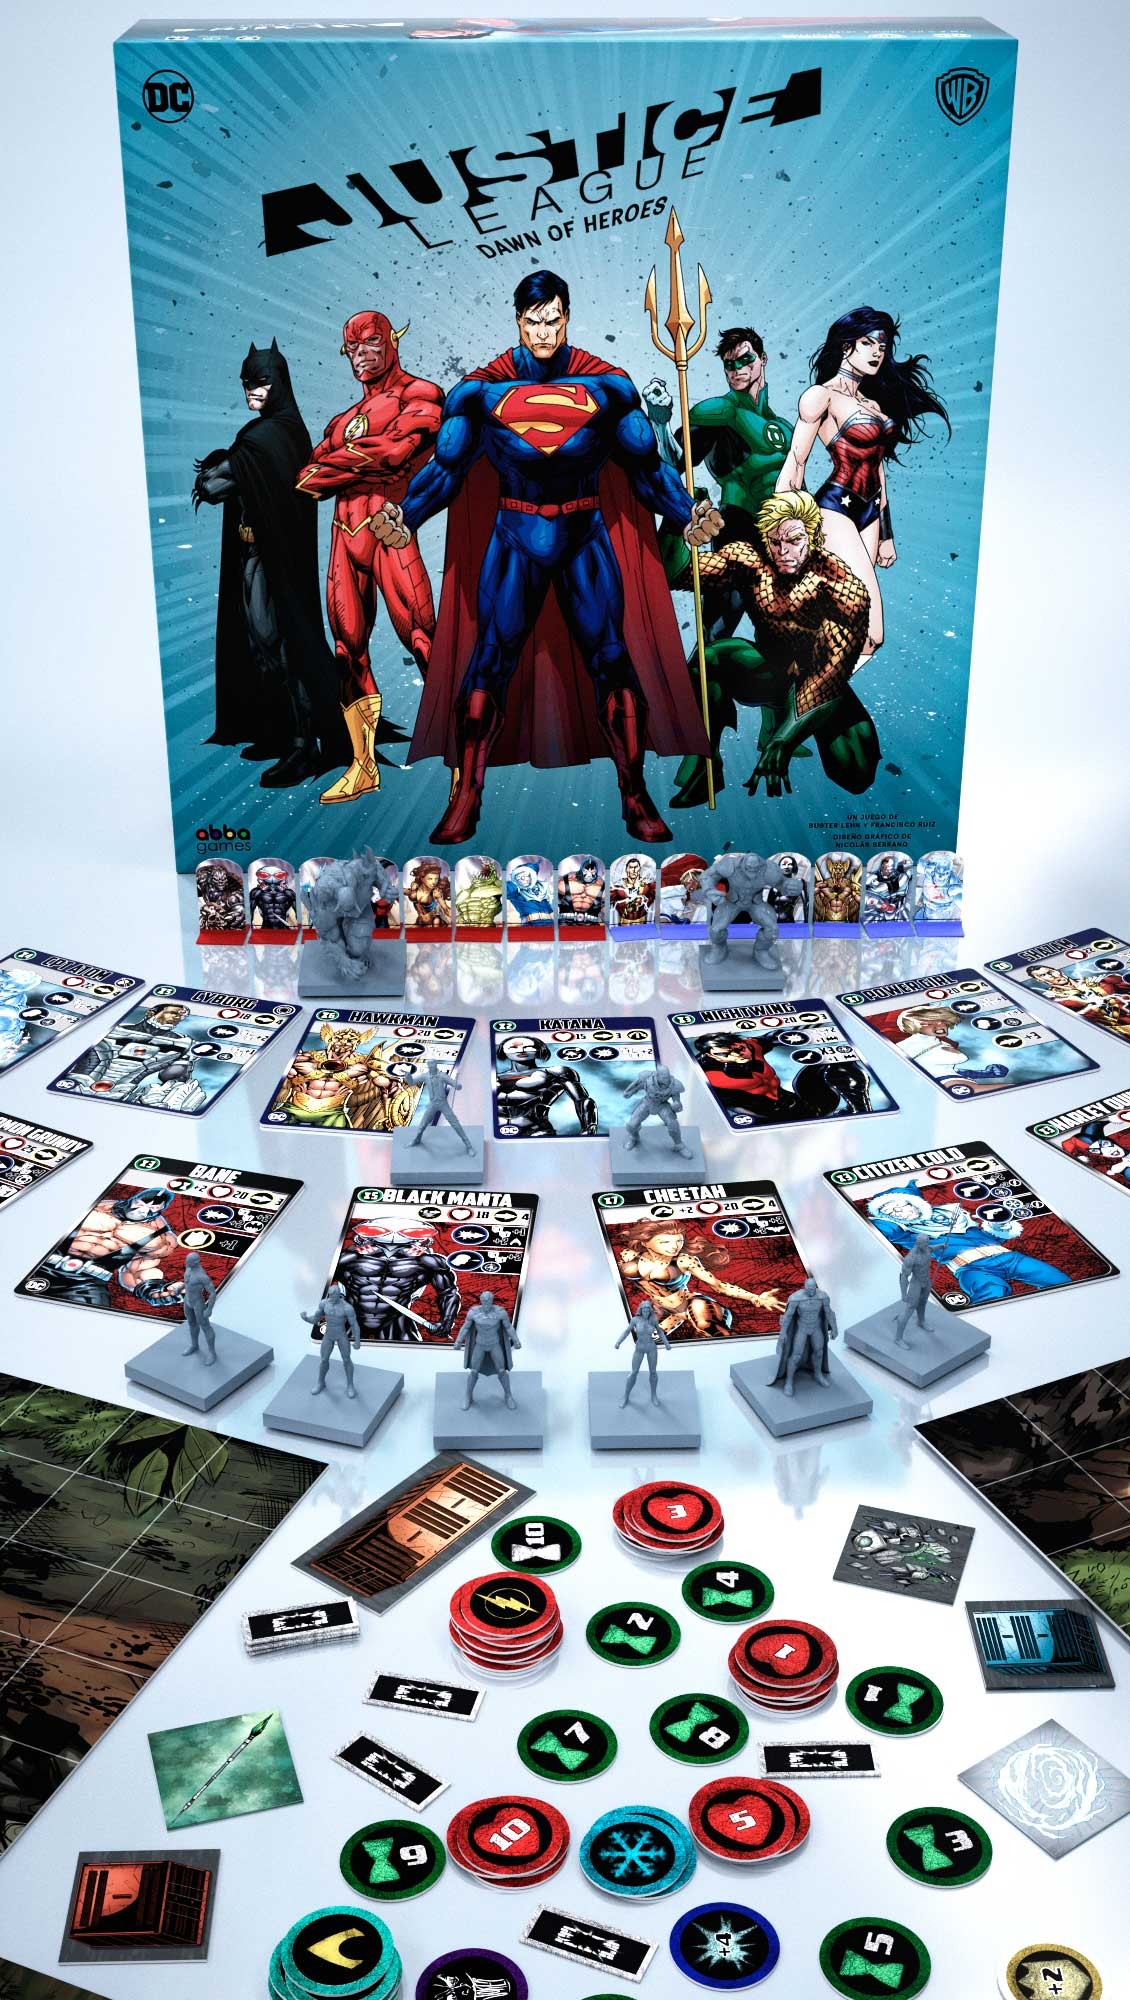 Juego De Mesa La Liga Justice League Dawn Of Heroes